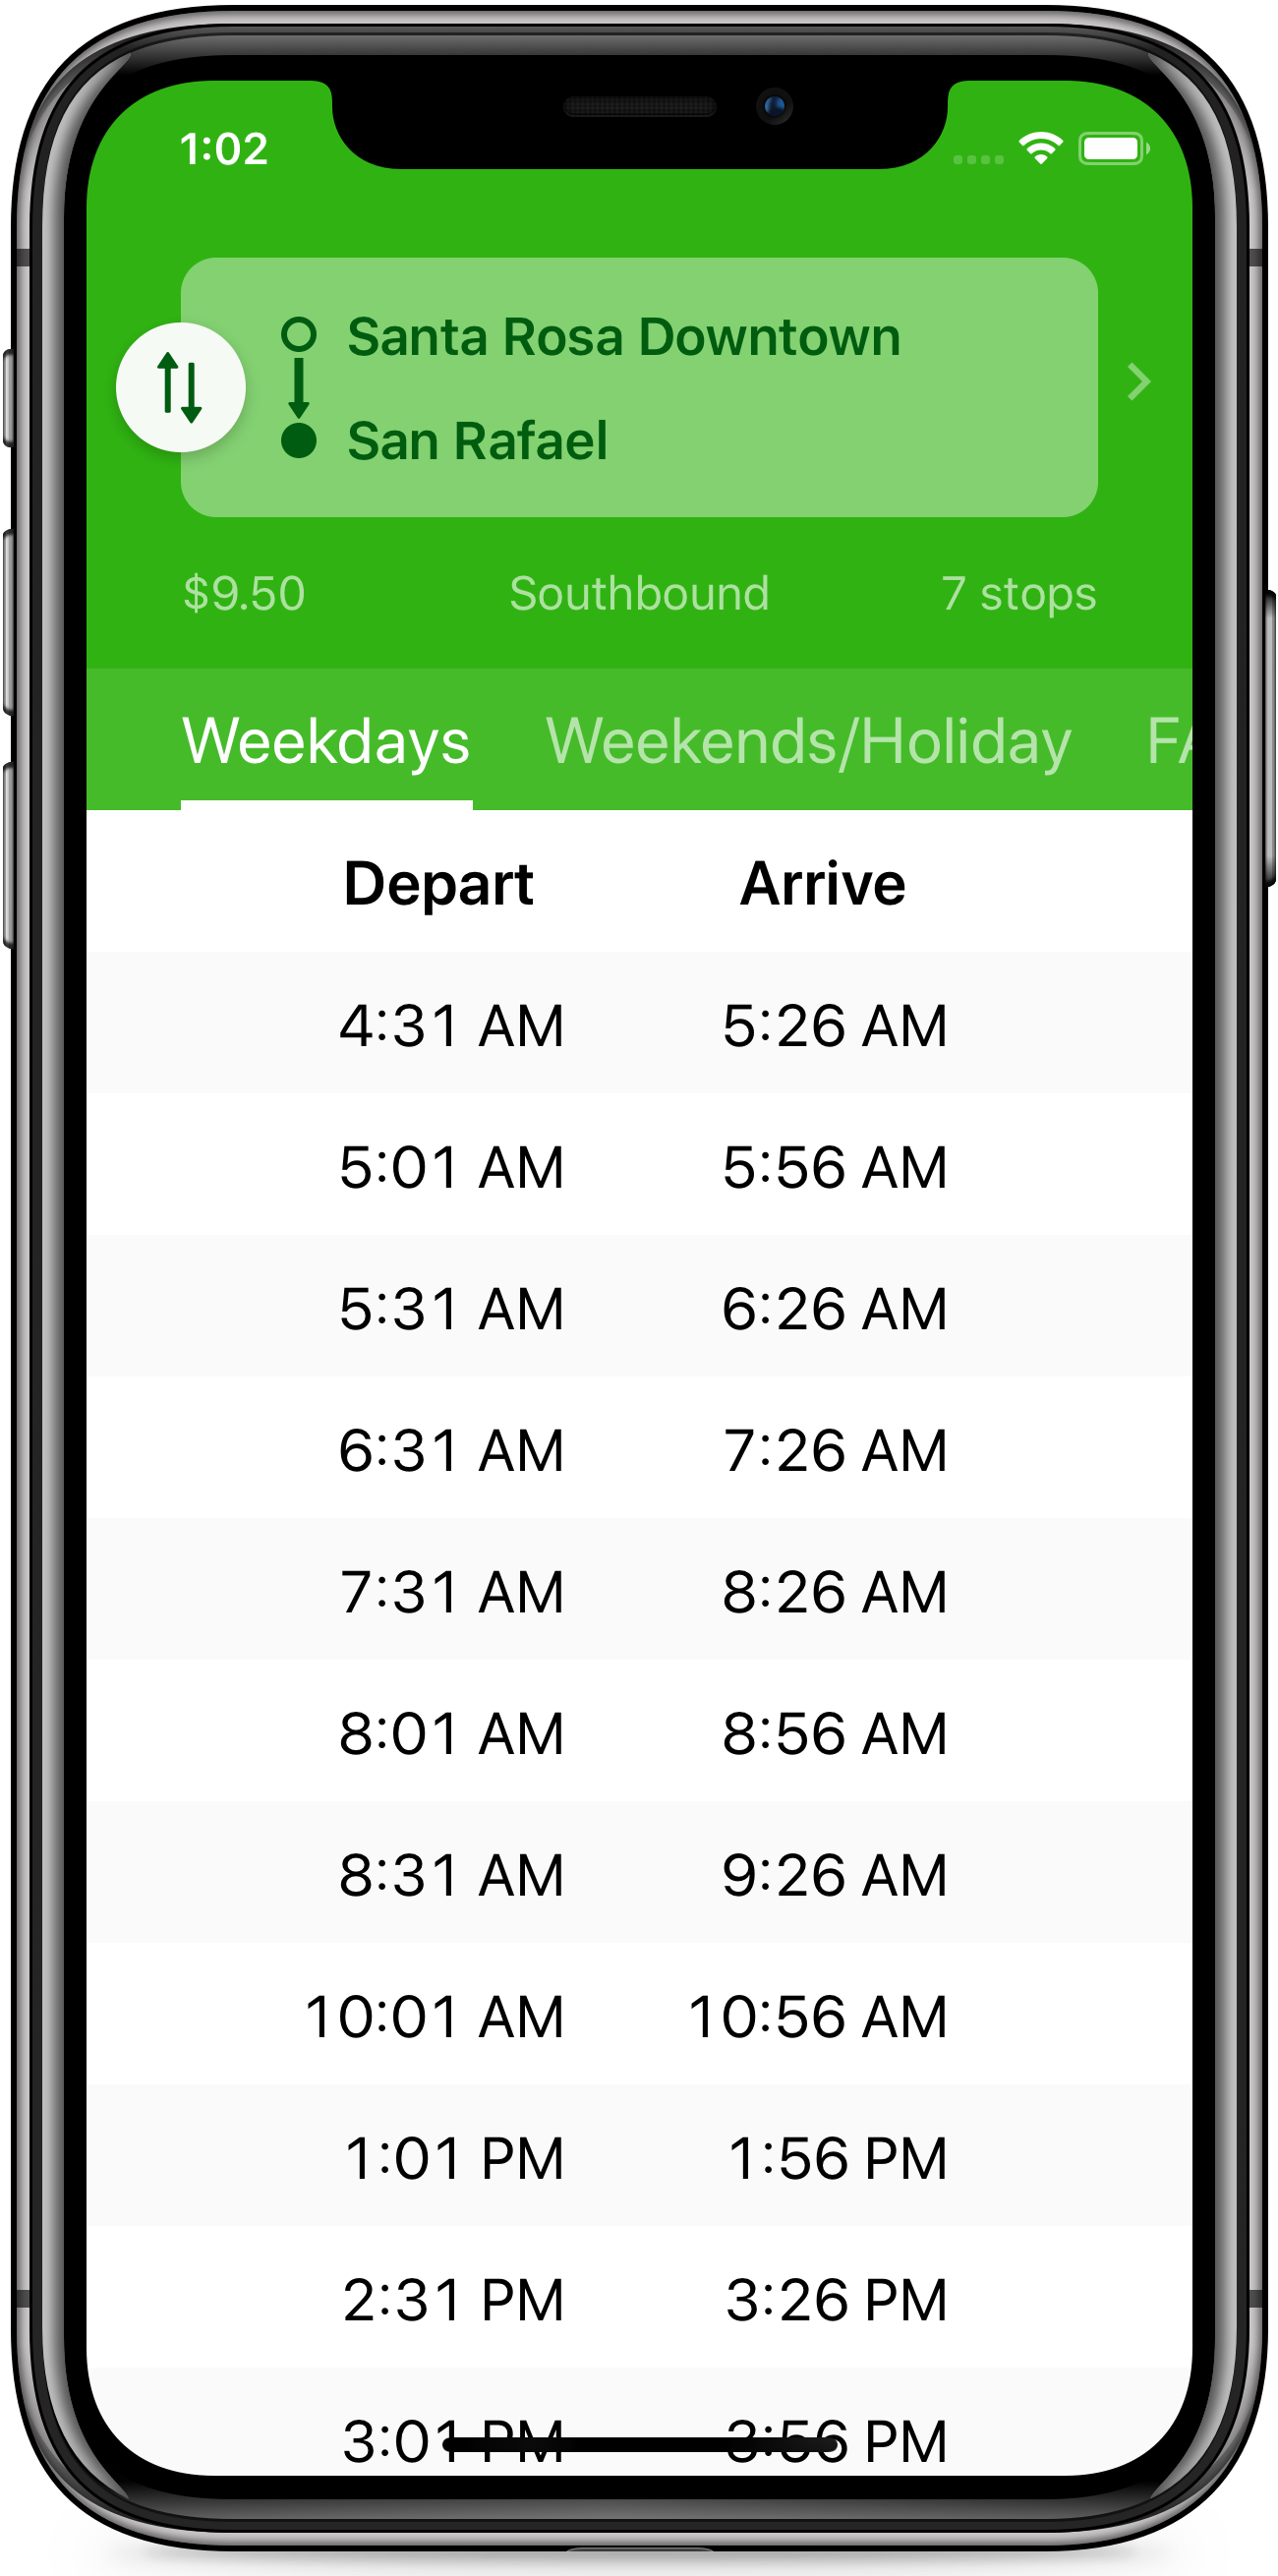 Wye train schedules app screenshot of weekday timetable